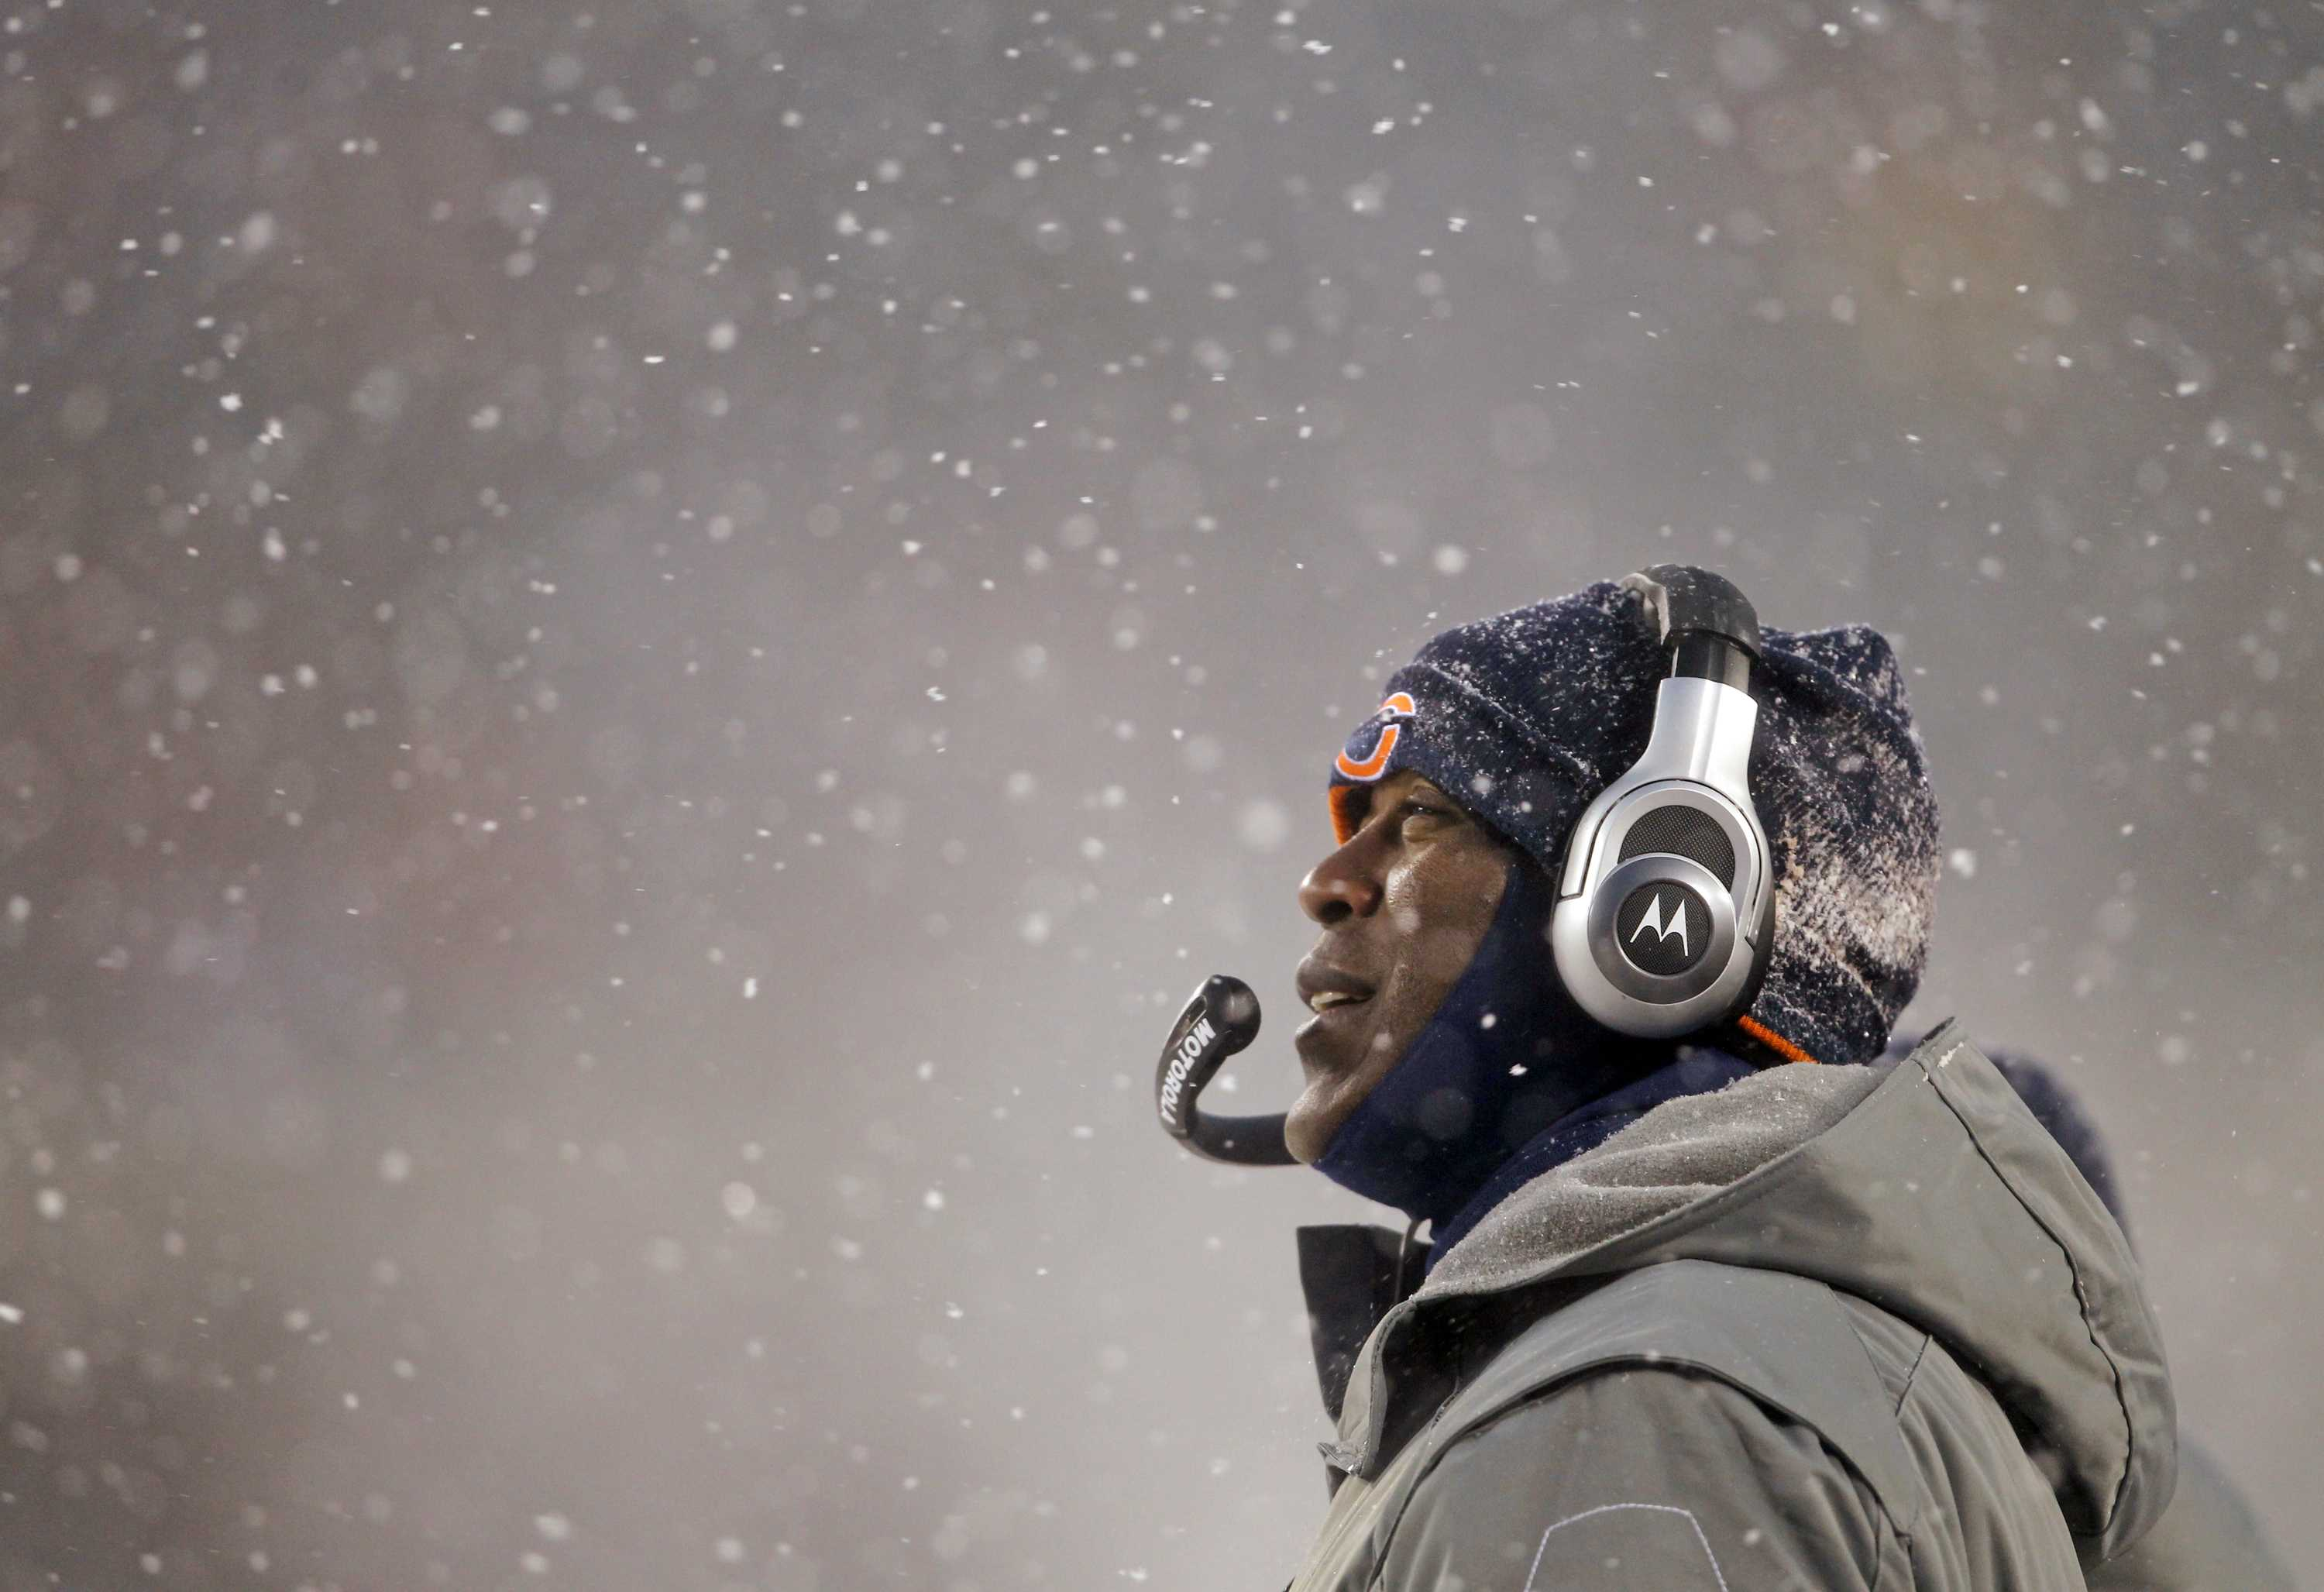 Lovie Smith, then the Chicago Bears' head coach during a game in 2010 against the New England Patriots. Illinois athletic director Josh Whitman announced Monday via Twitter that Smith has been picked to be the Illini's next head coach.(Scott Strazzante/Chicago Tribune/MCT)